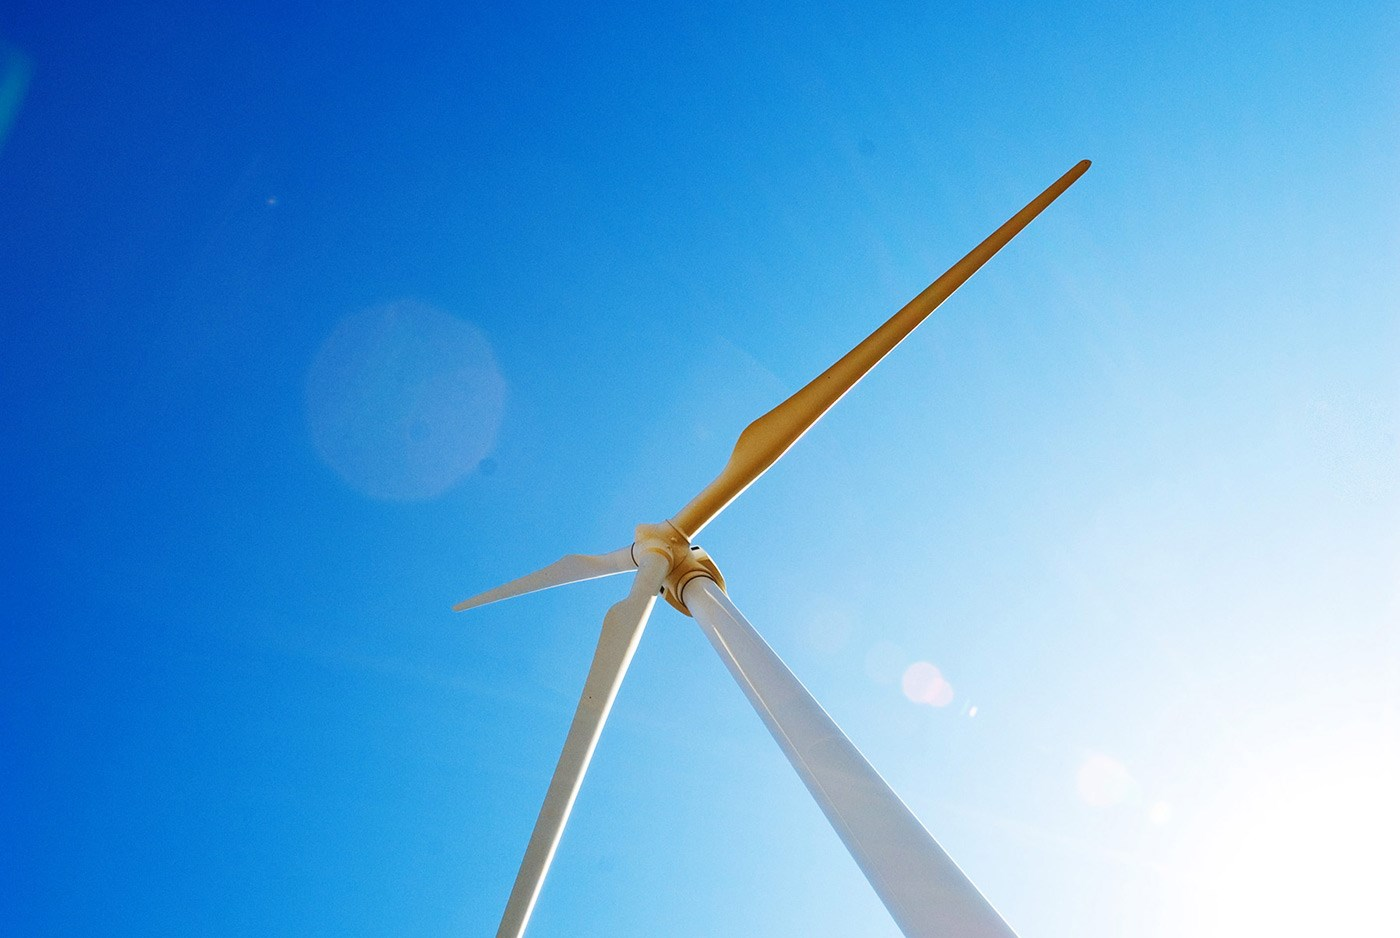 wind-turbine-looking-up-at